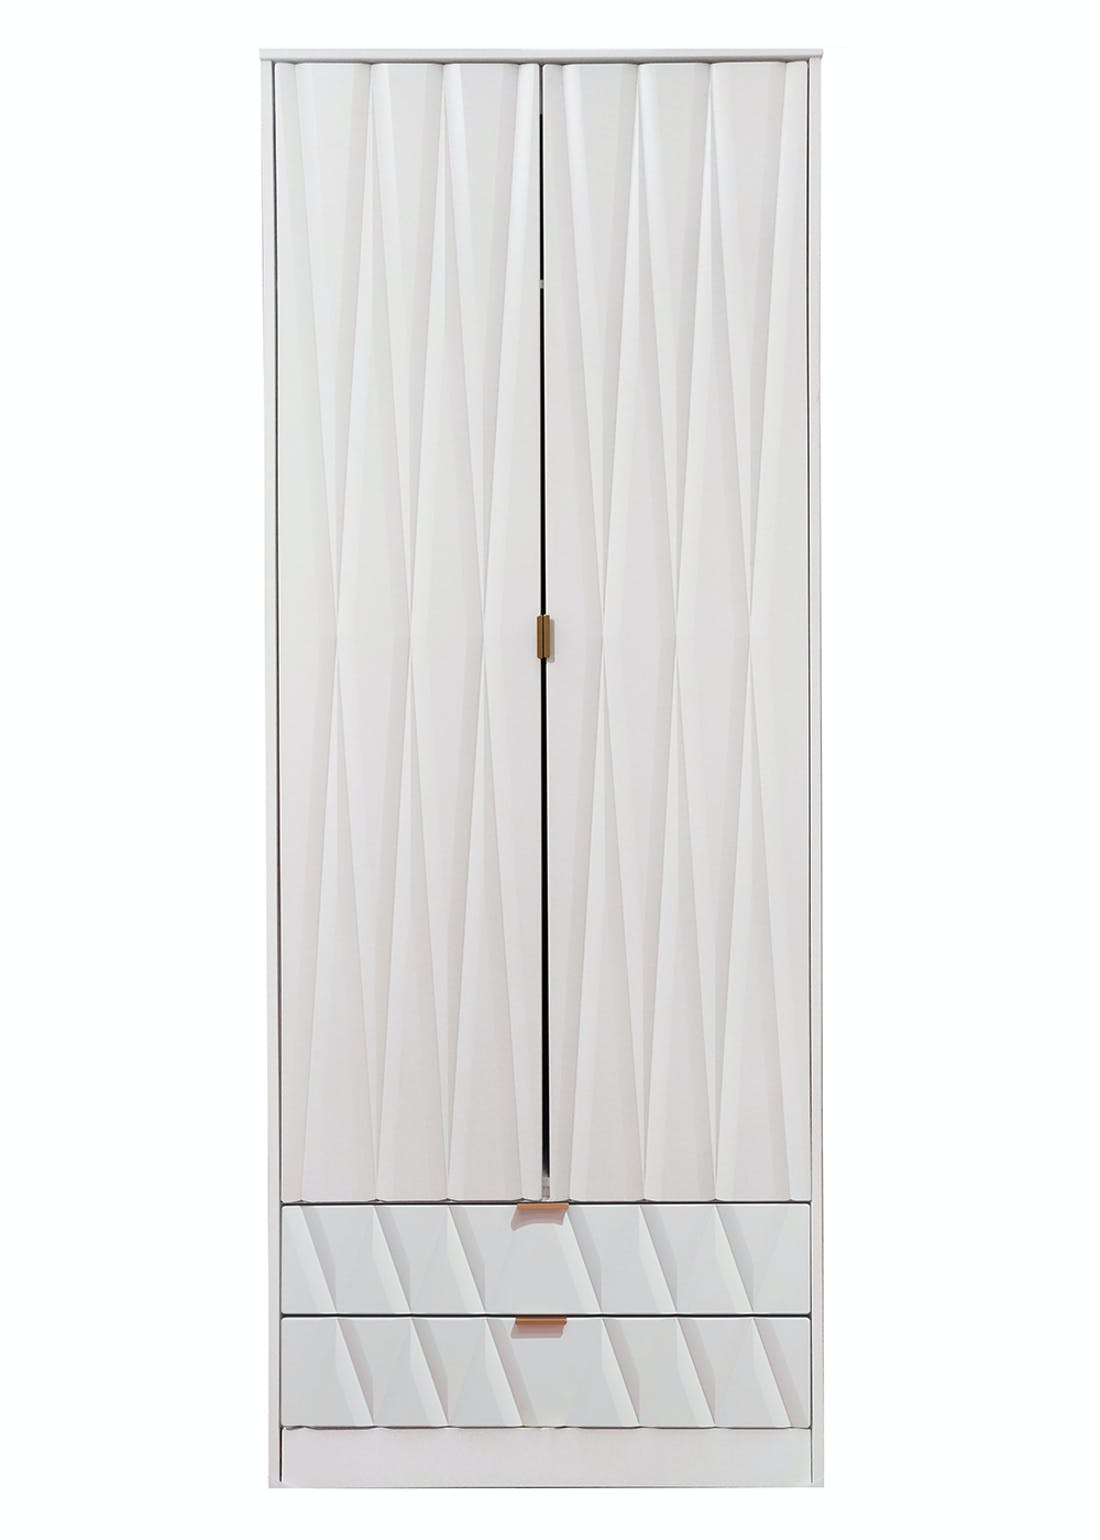 Swift Prism 2 Door 2 Drawer Wardrobe (201.5cm x 76.5cm x 53cm)